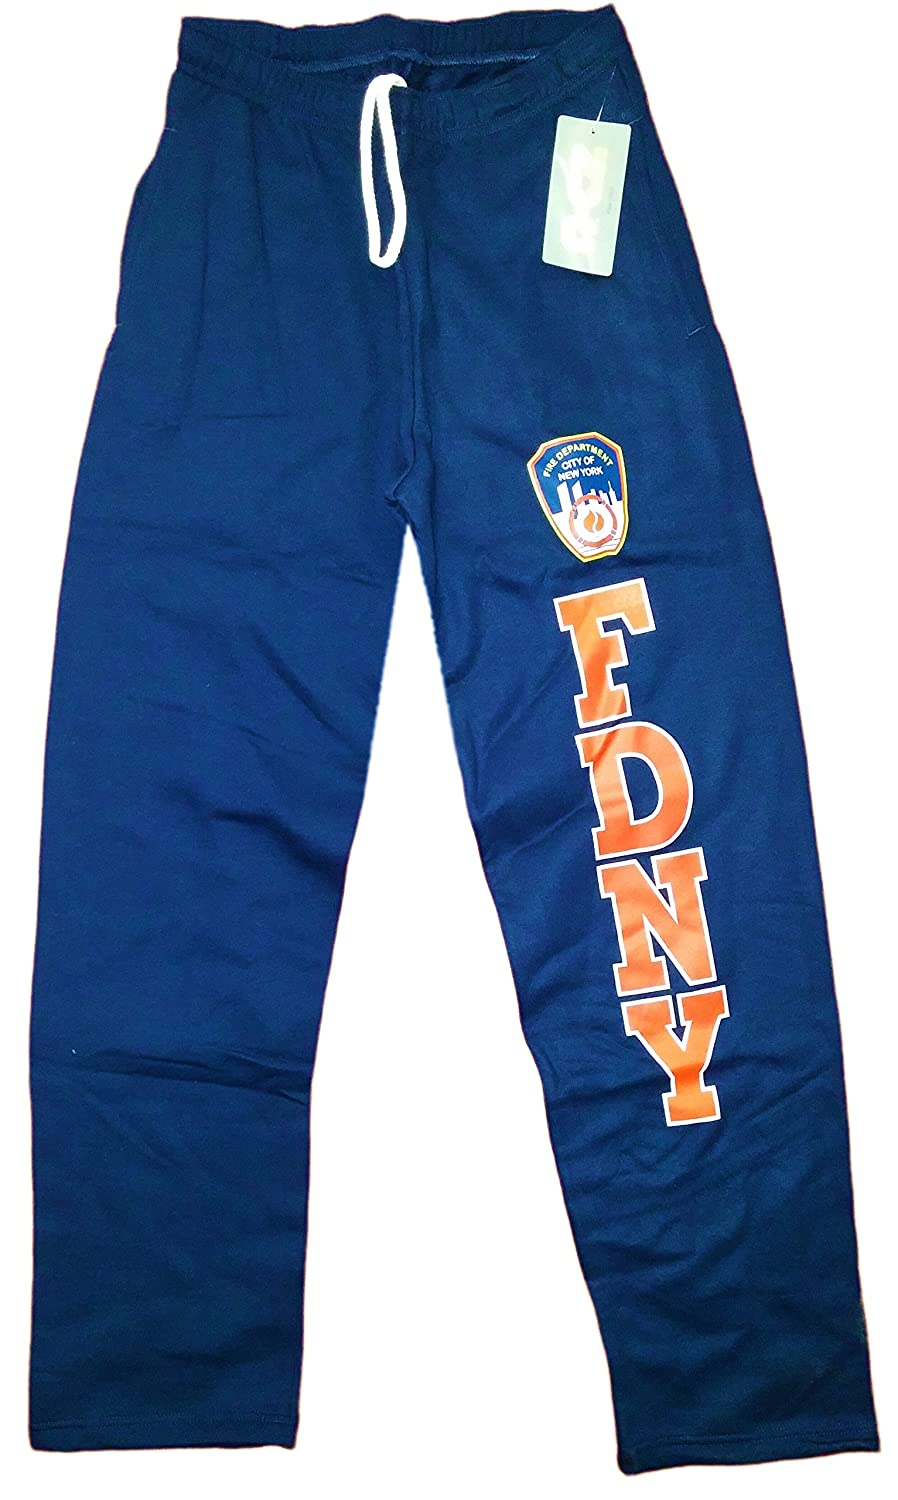 NYC FACTORY FDNY Sweatpants Official Licensed Mens Pants Navy Blue